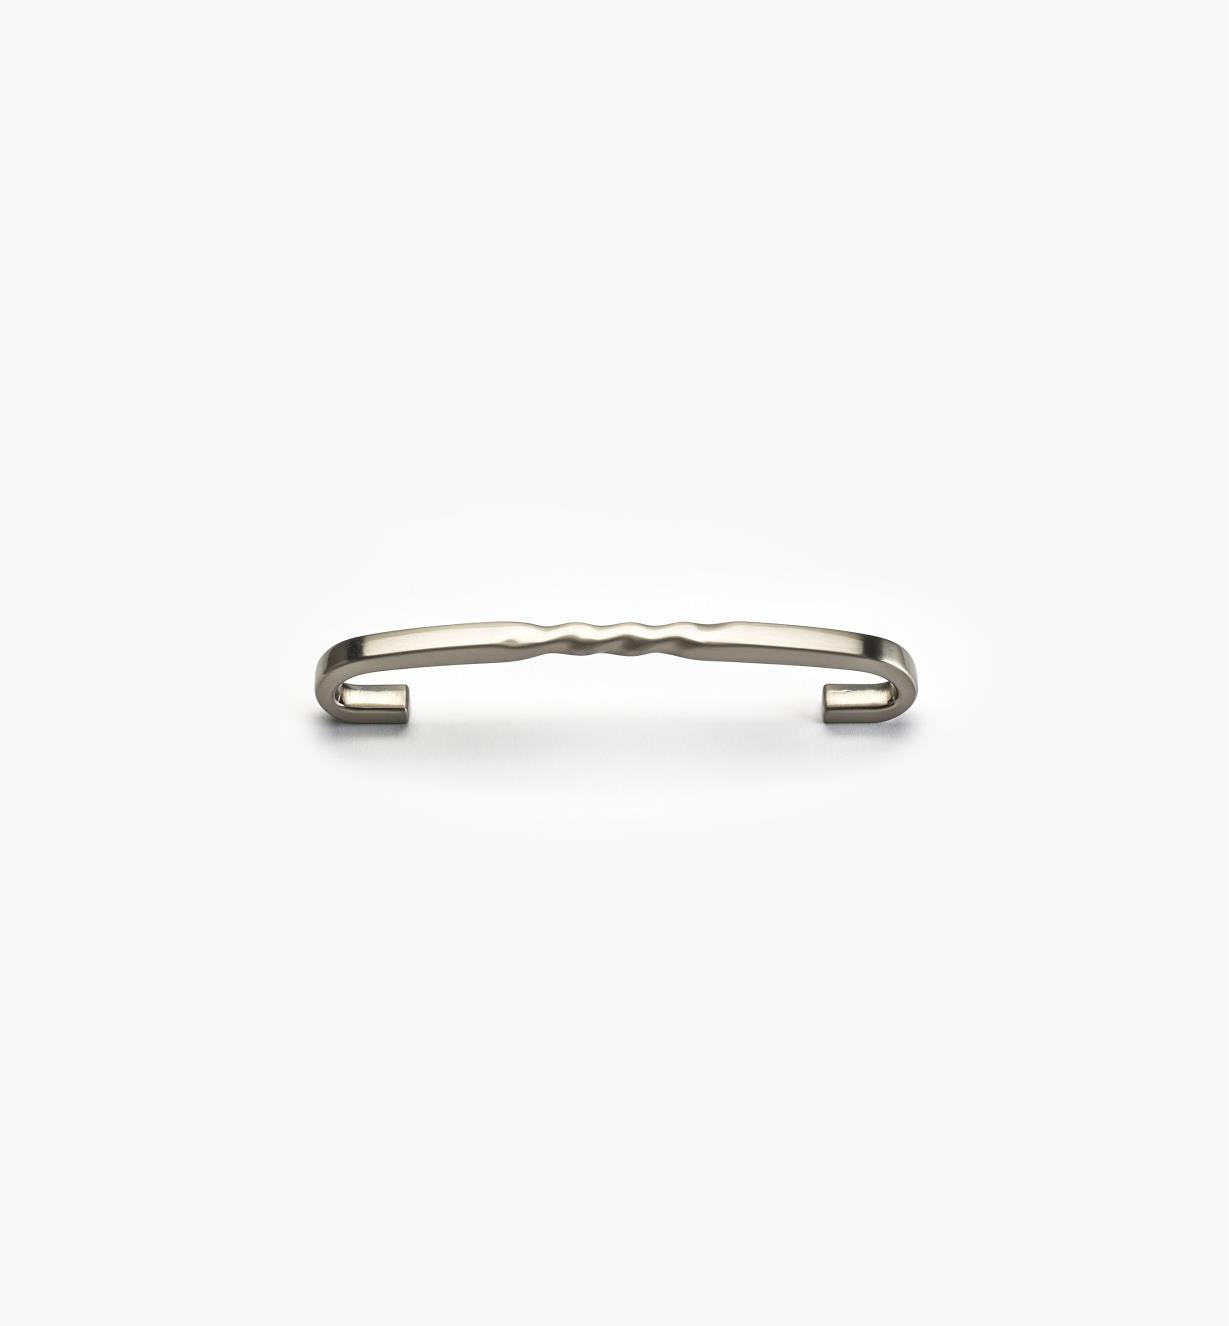 02A0827 - Twist Appliance Handle